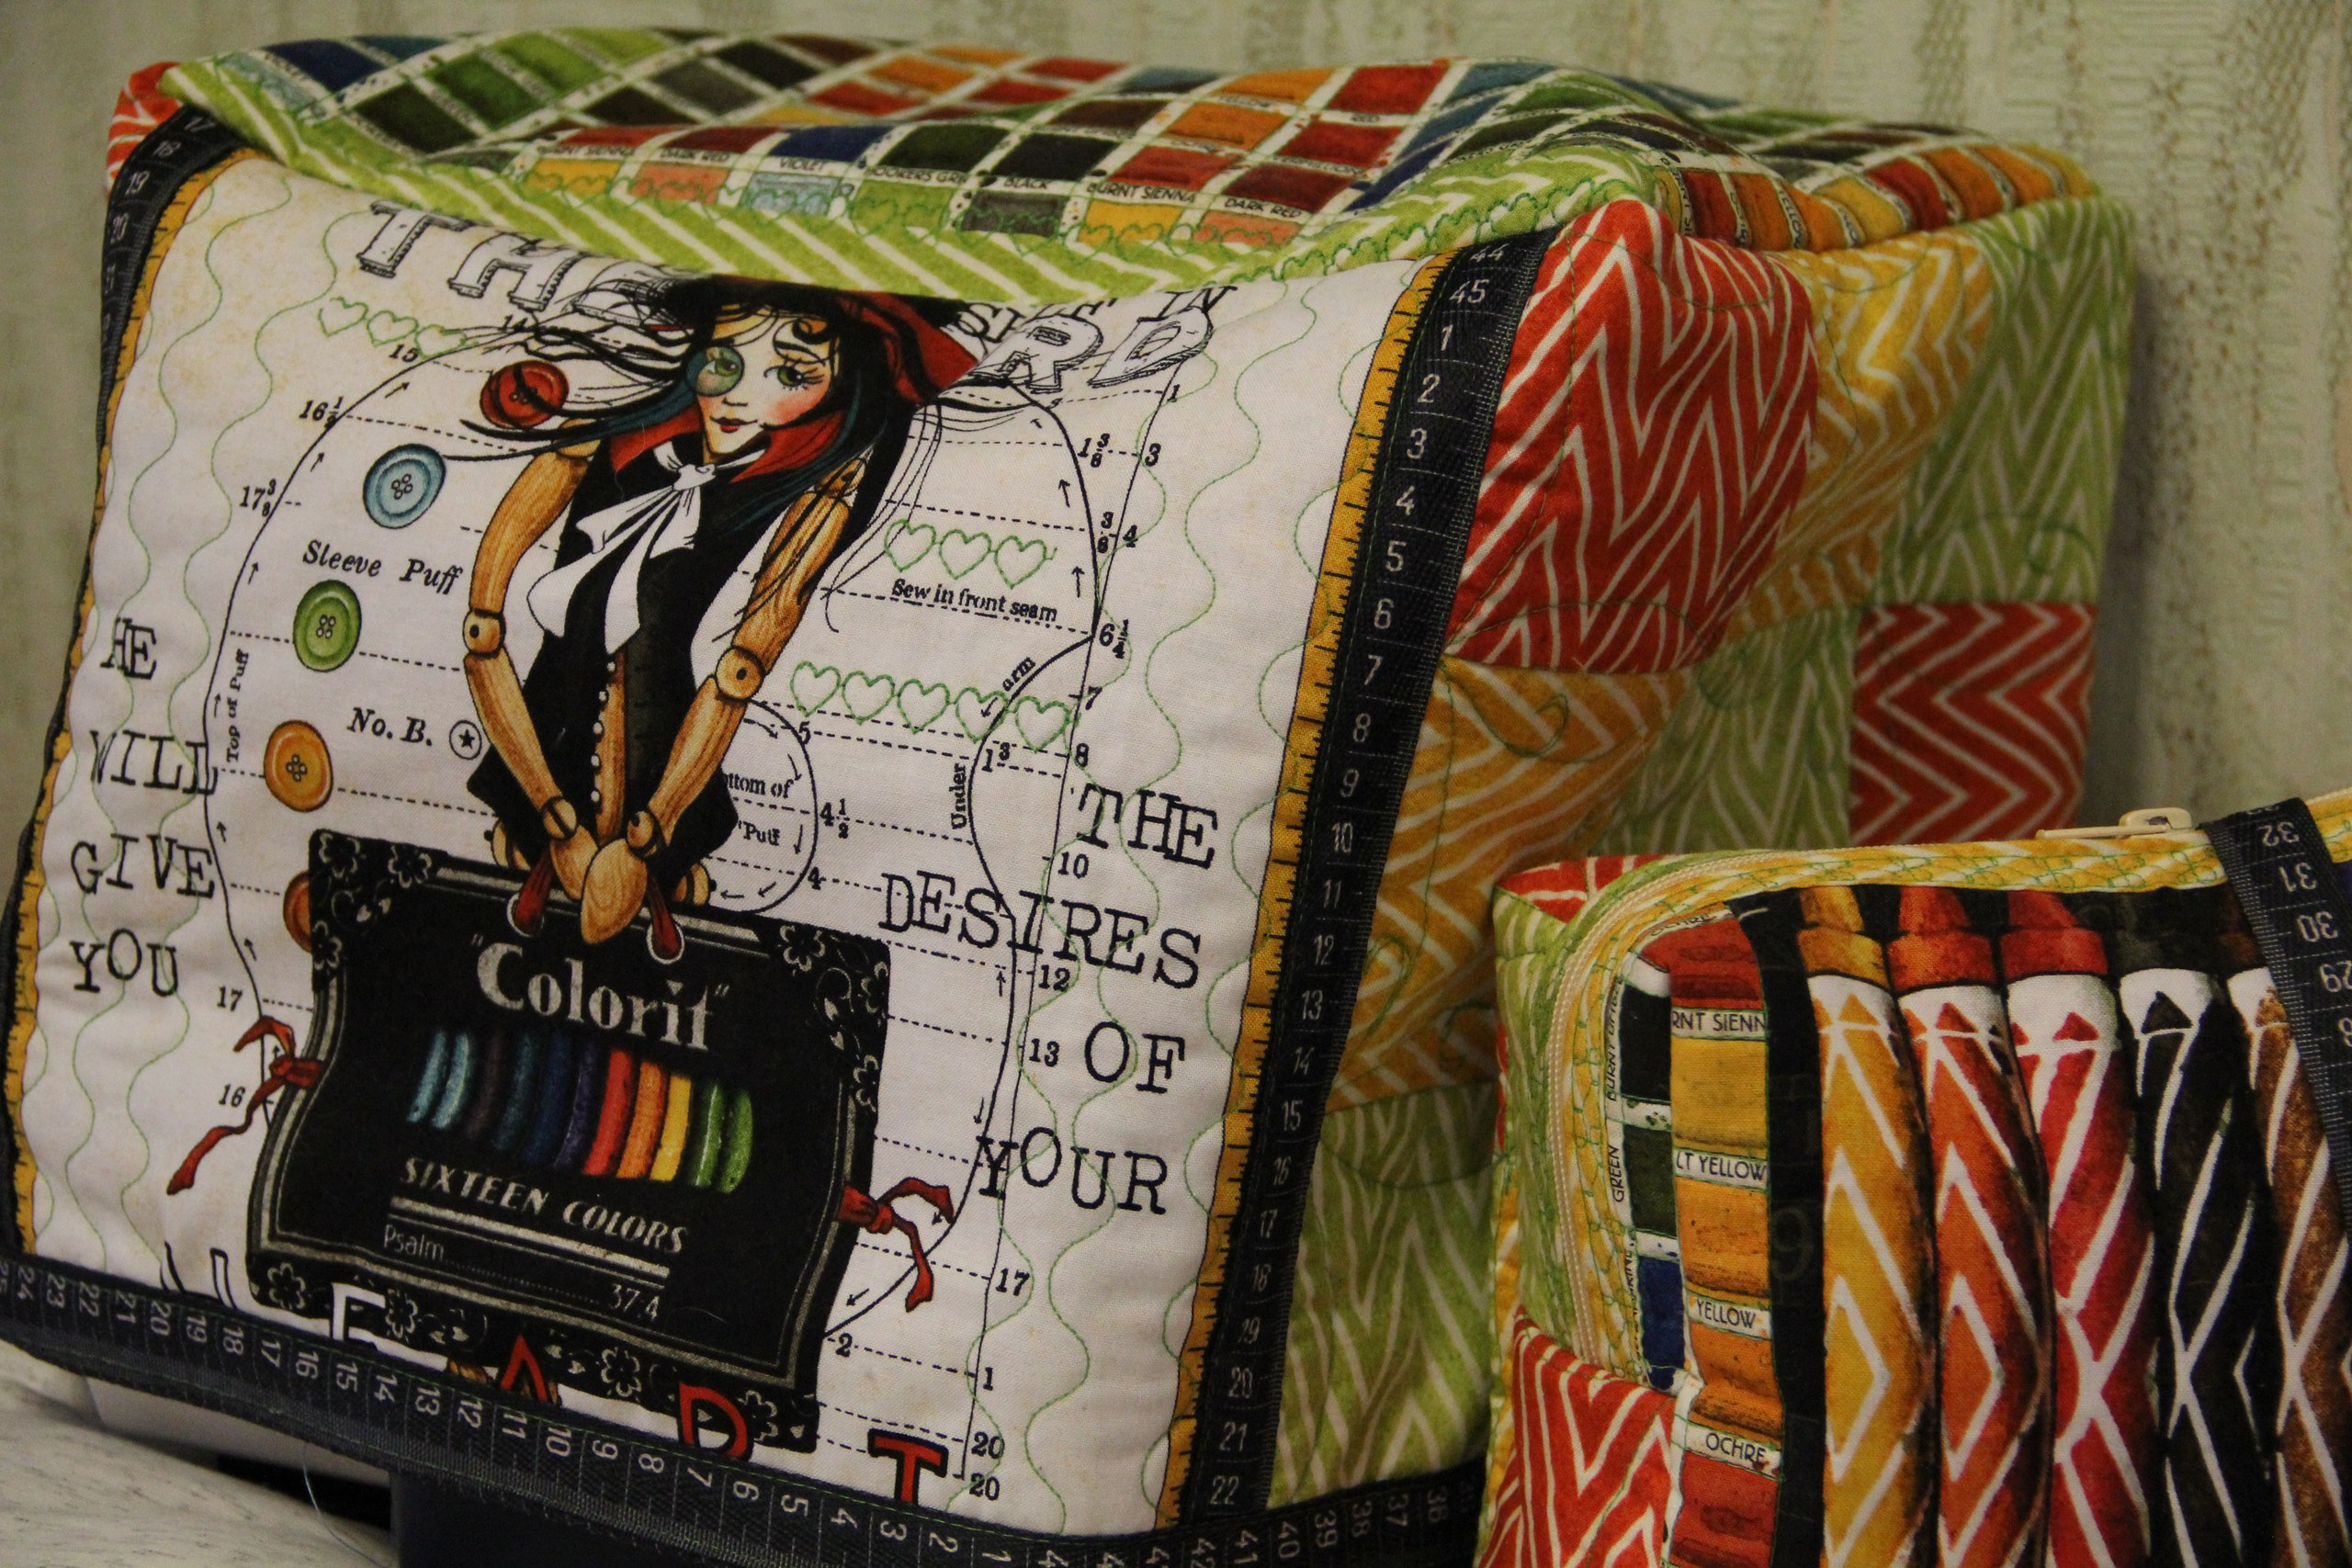 "Отзыв о тканях QUILTING TREASURES ""ЗАРИСОВКИ"" (CREATIVE COVERLET) и иголочках Hemline"